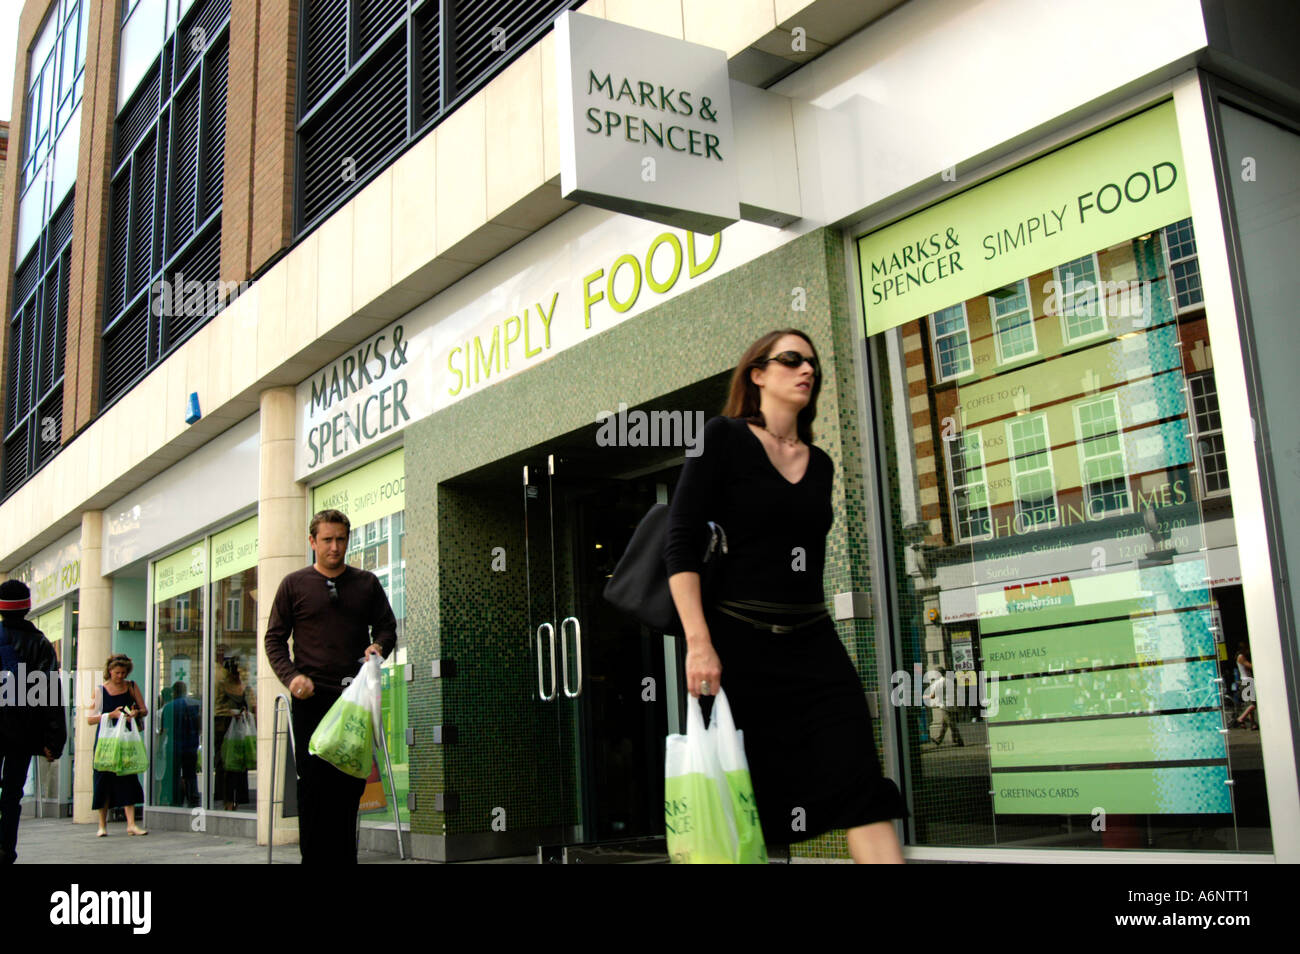 marketing analysis of marks and spencer As mentioned above, it is a brief analysis however it addresses some of the key issues as follows: strengths of marks and spencer (m&s) market experience marks and spencer is a leading retailer in the uk.